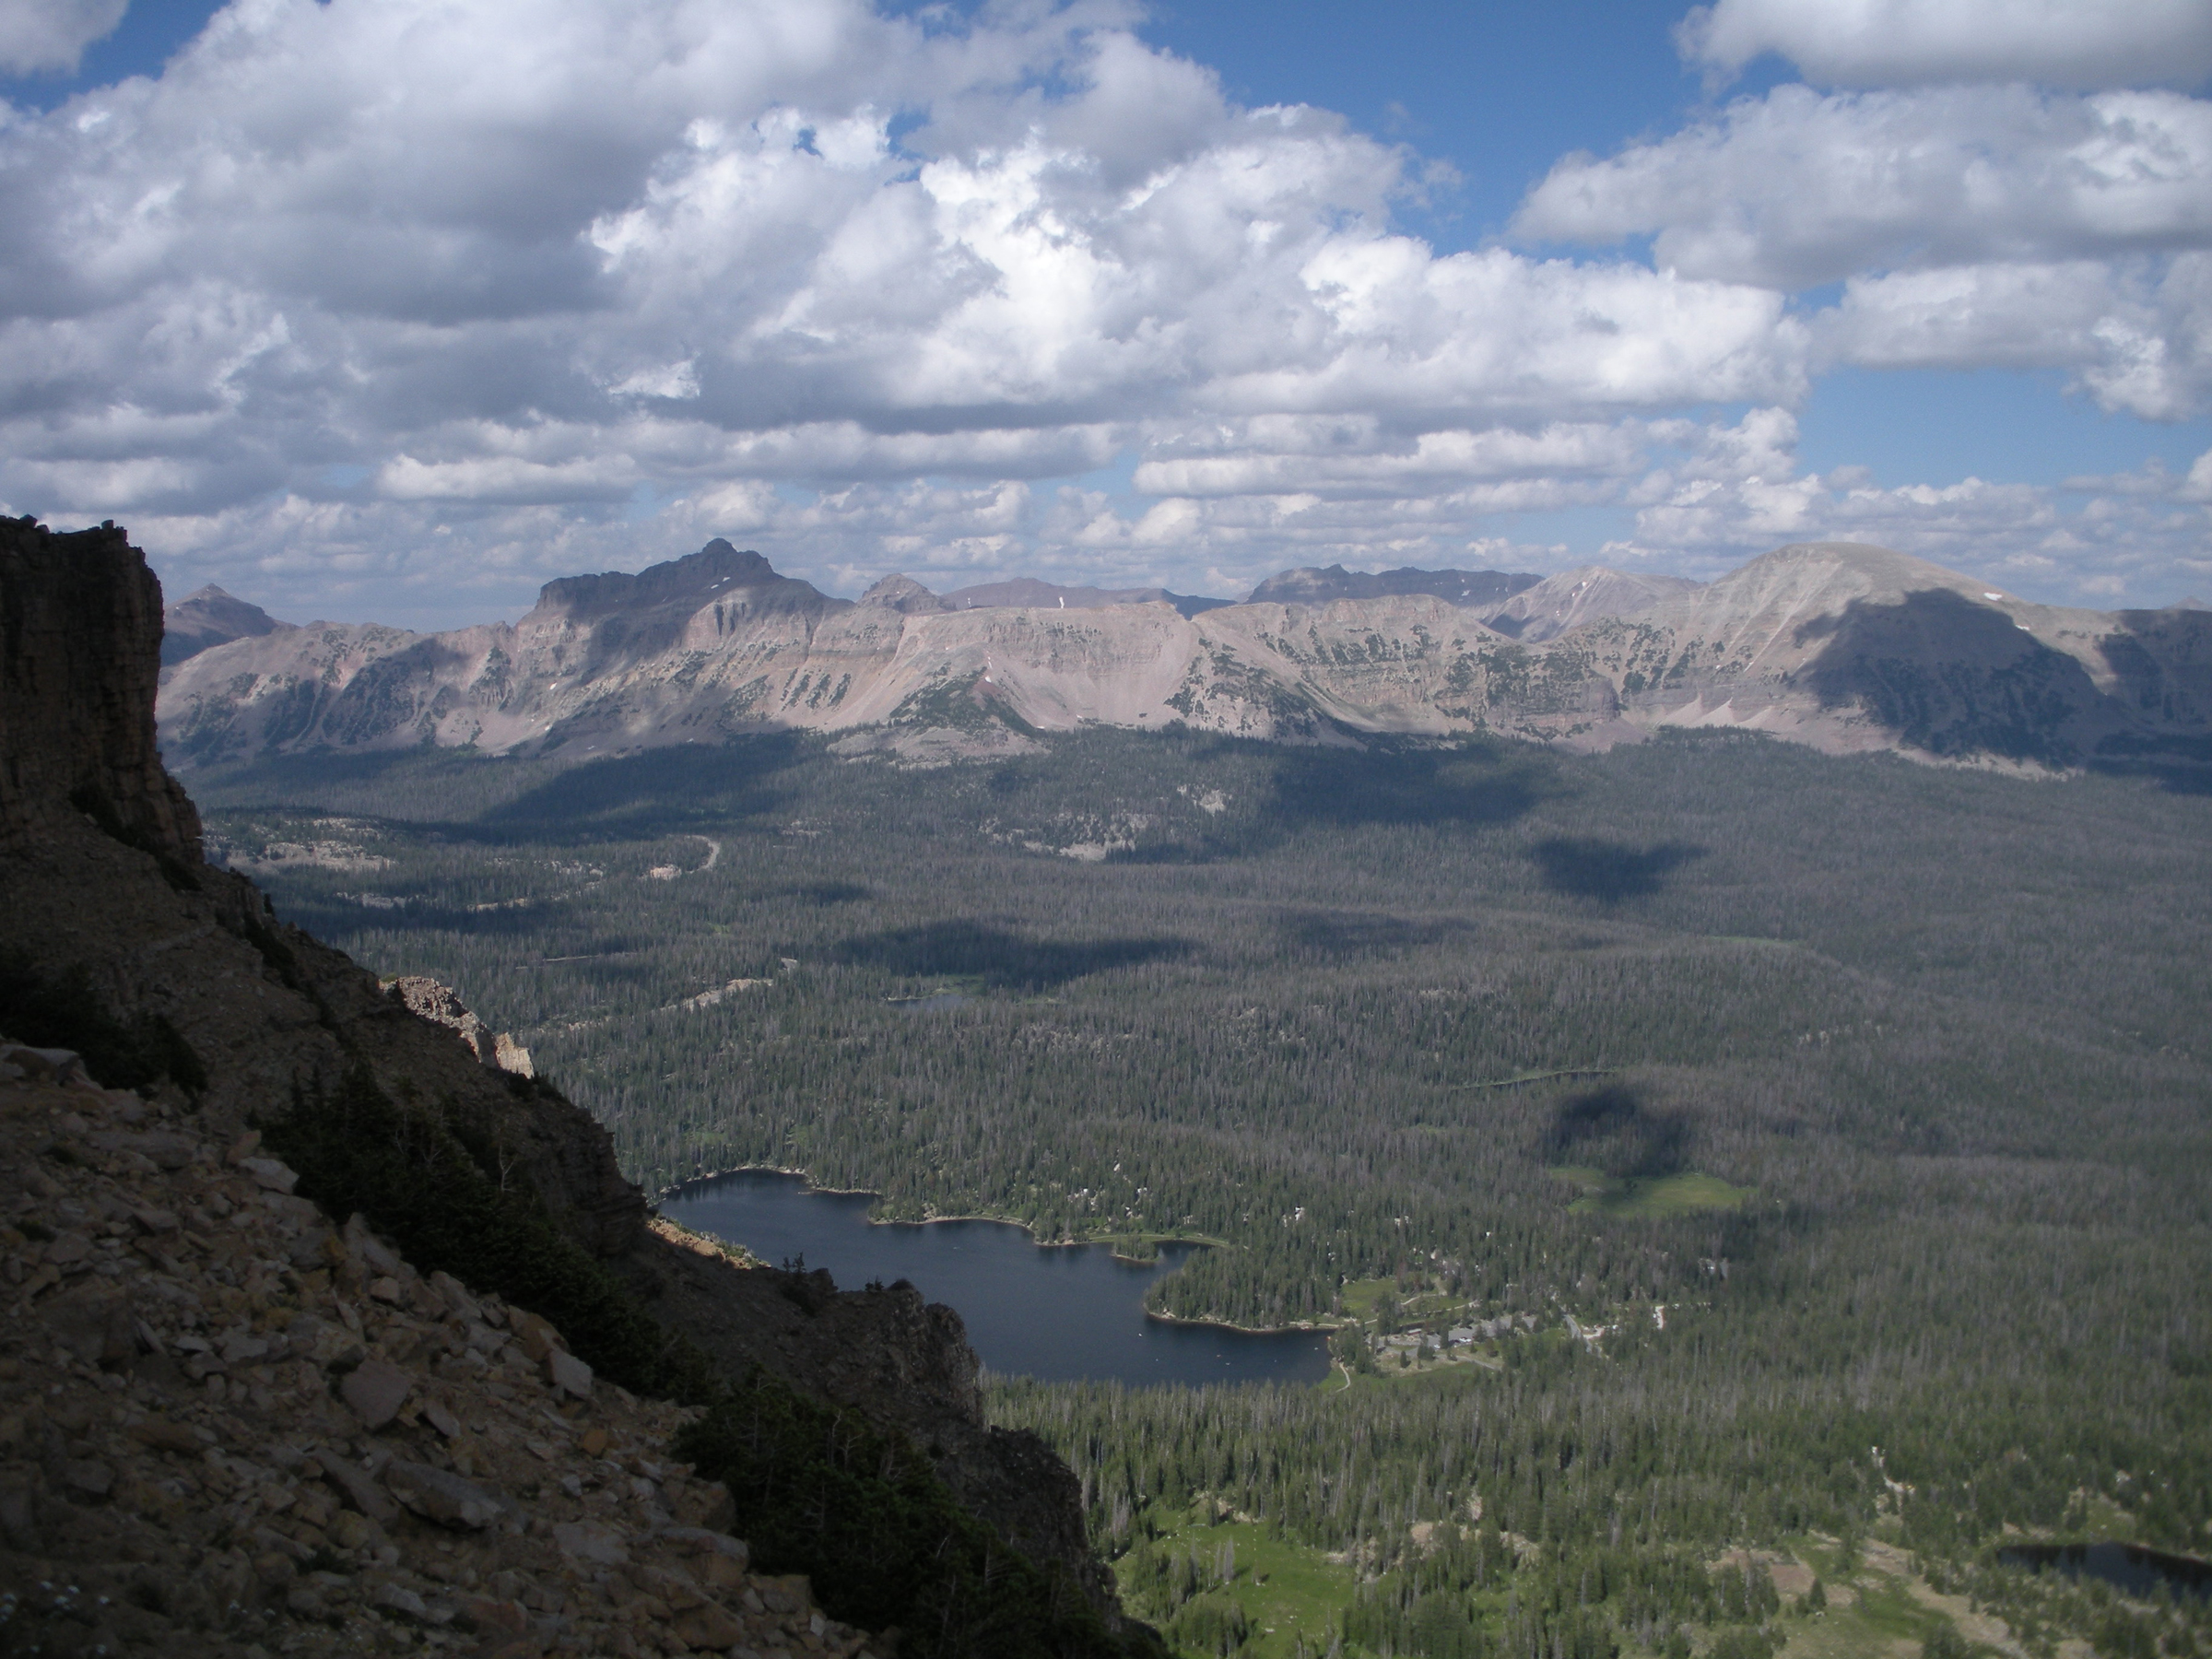 Looking northeast from just below the summit of Bald Mountain in the High Uintas shows Mirror Lake and a vast vista below.